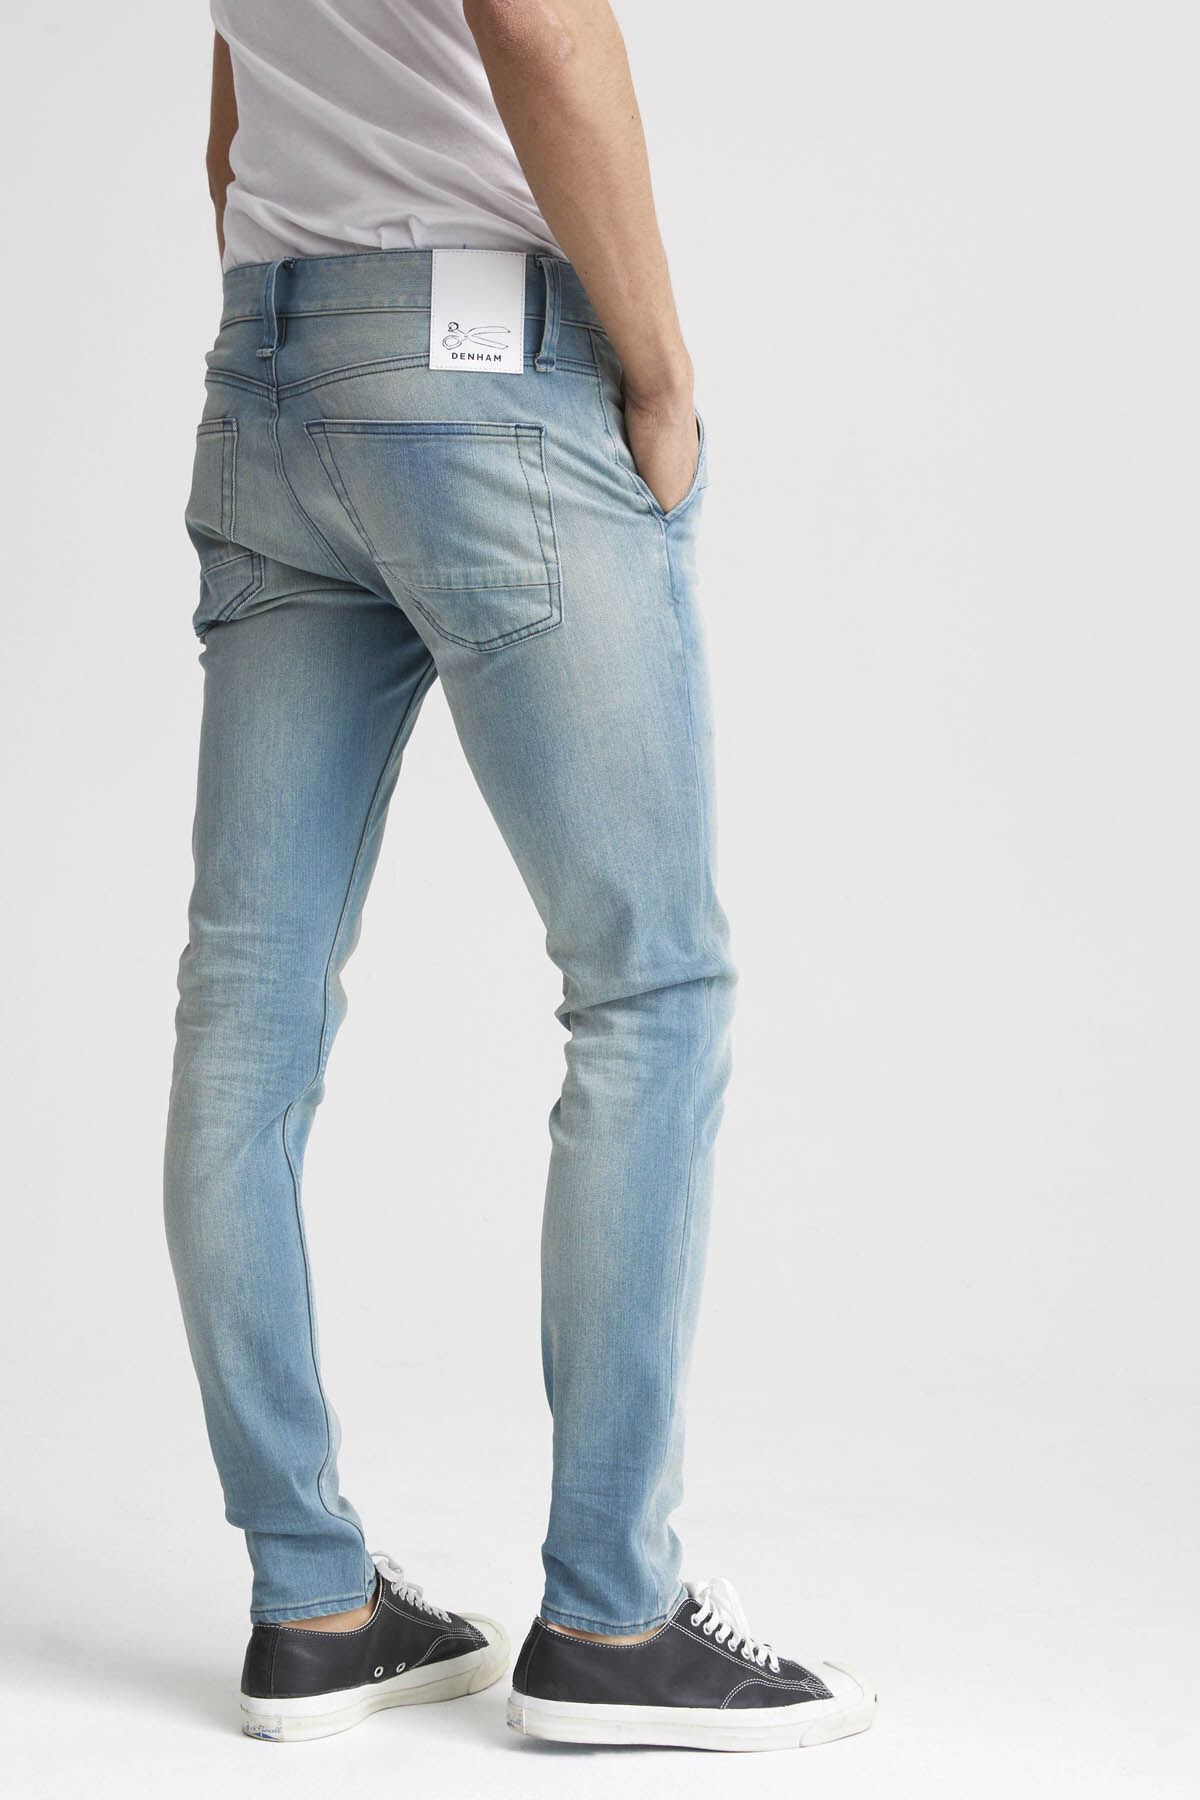 YORK Subtle Fade Denim - Slim, Tapered Fit